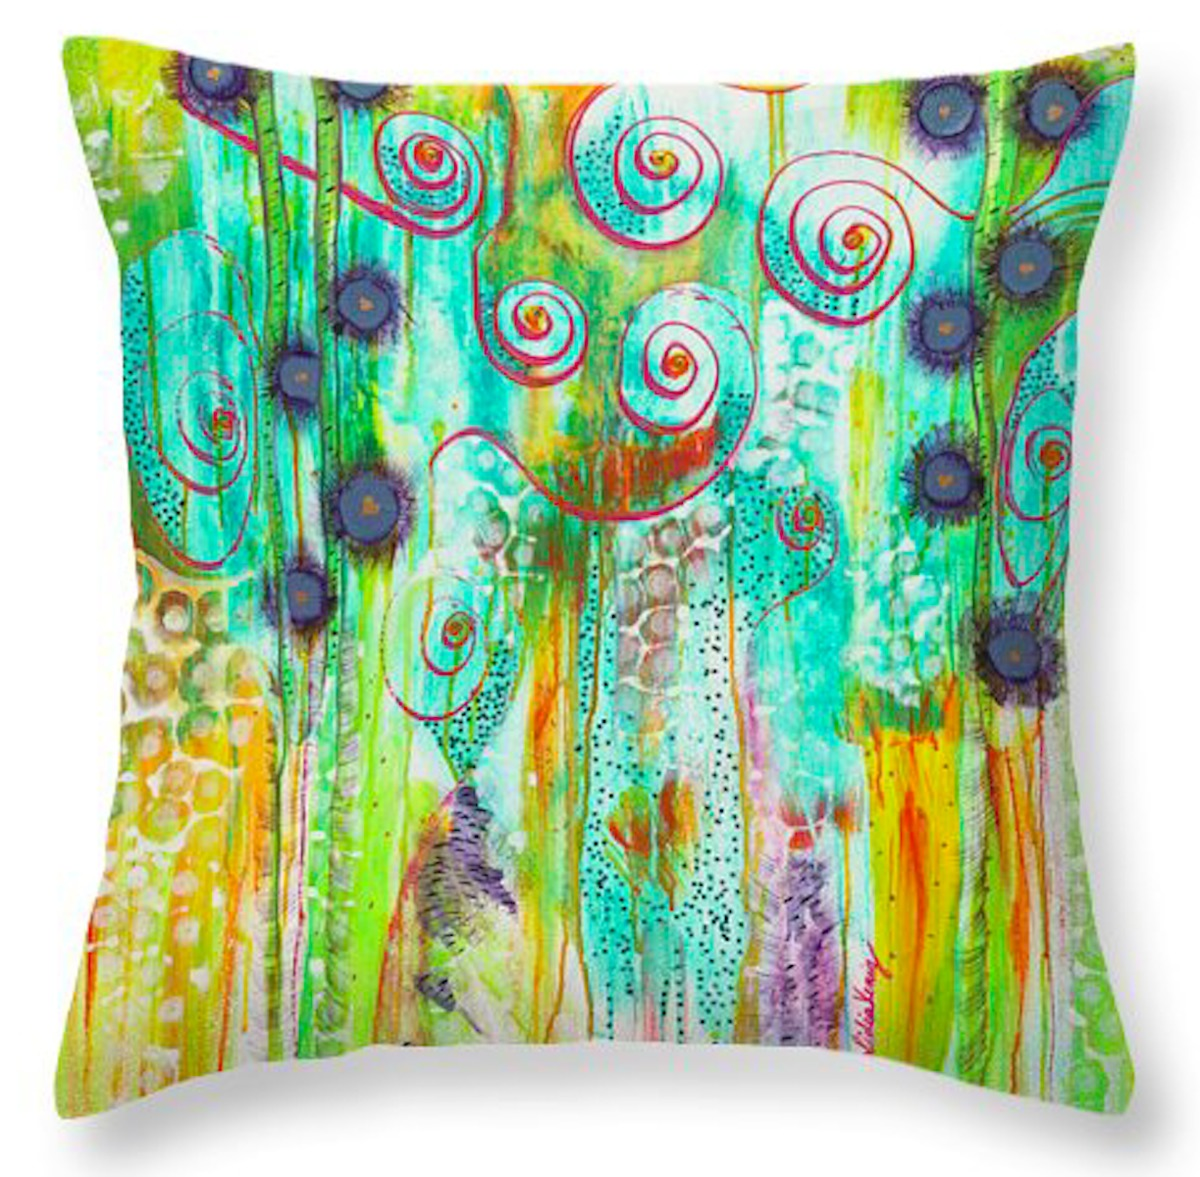 Inviting Healing - Throw Pillow (20x20) (large view)